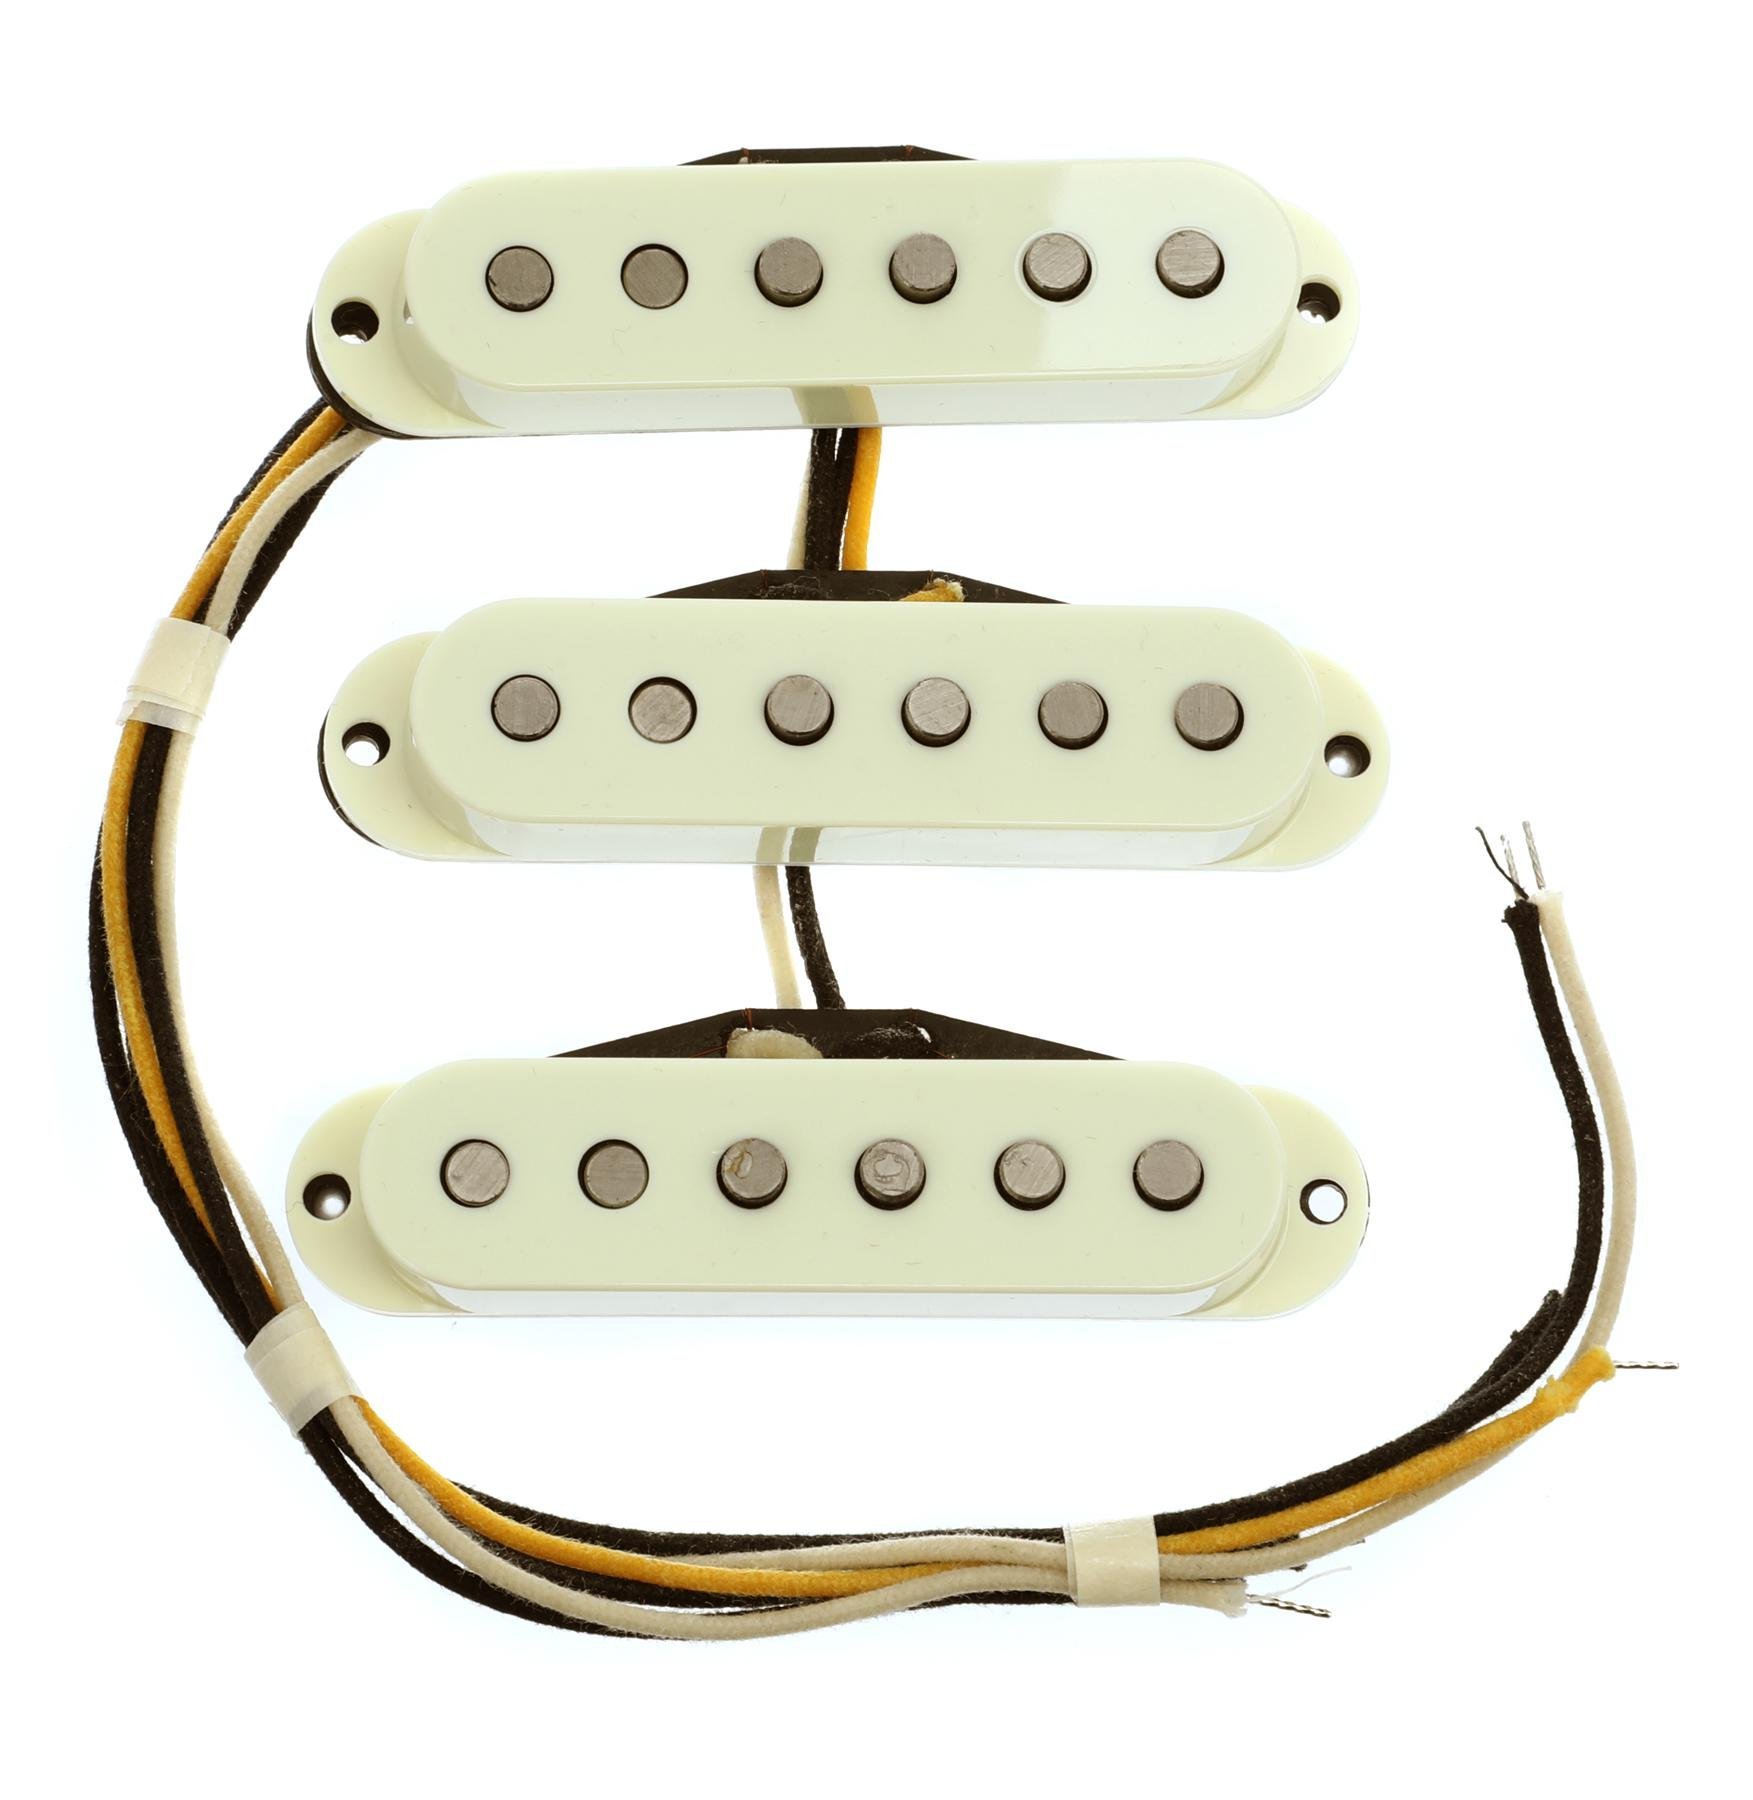 hight resolution of fender custom shop josefina limited edition hand wound fat 50s stratocaster pickup set image